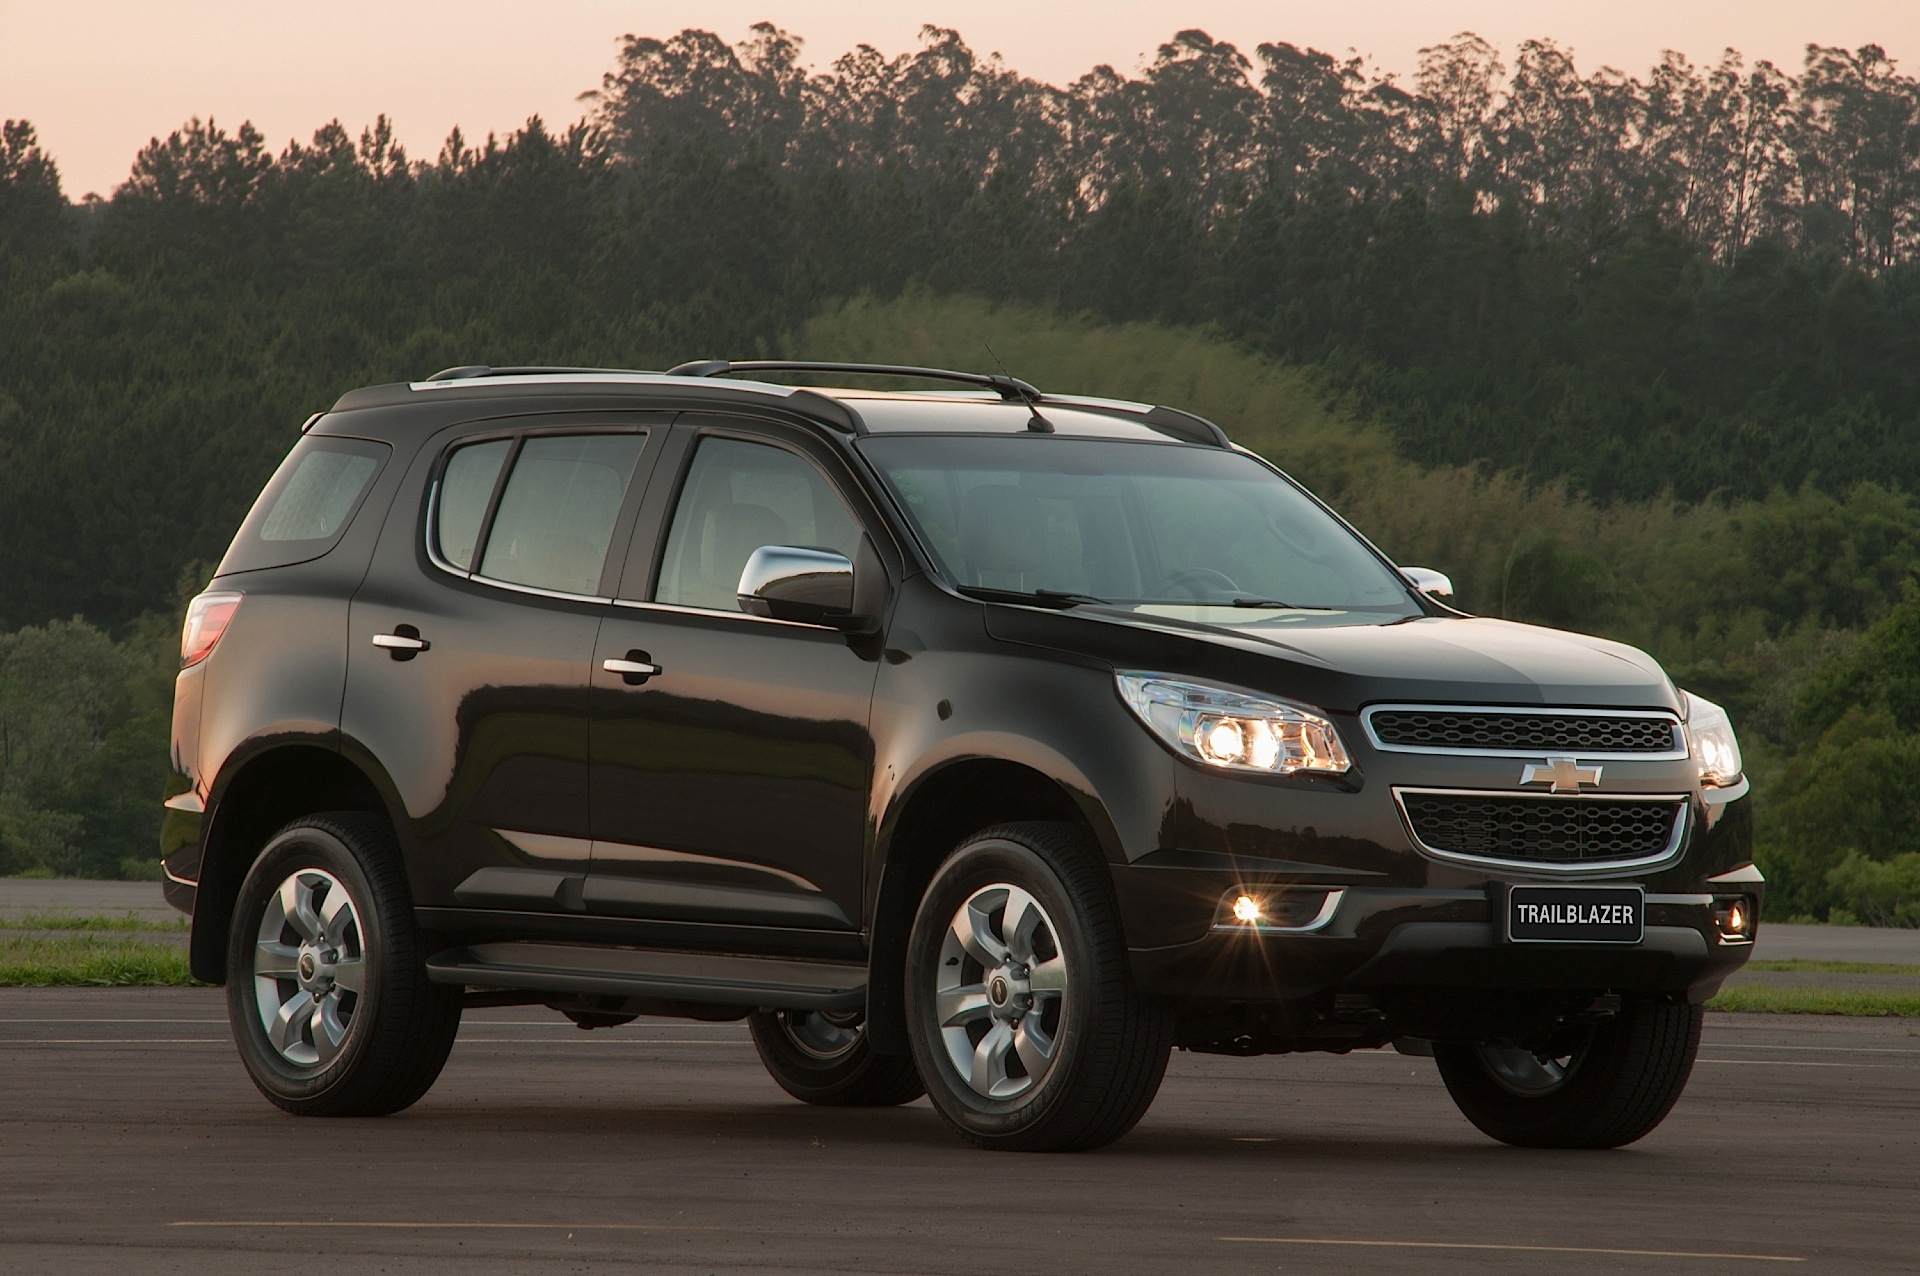 Chevy Trailblazer 2016 >> CHEVROLET TrailBlazer - 2012, 2013, 2014, 2015, 2016, 2017 - autoevolution